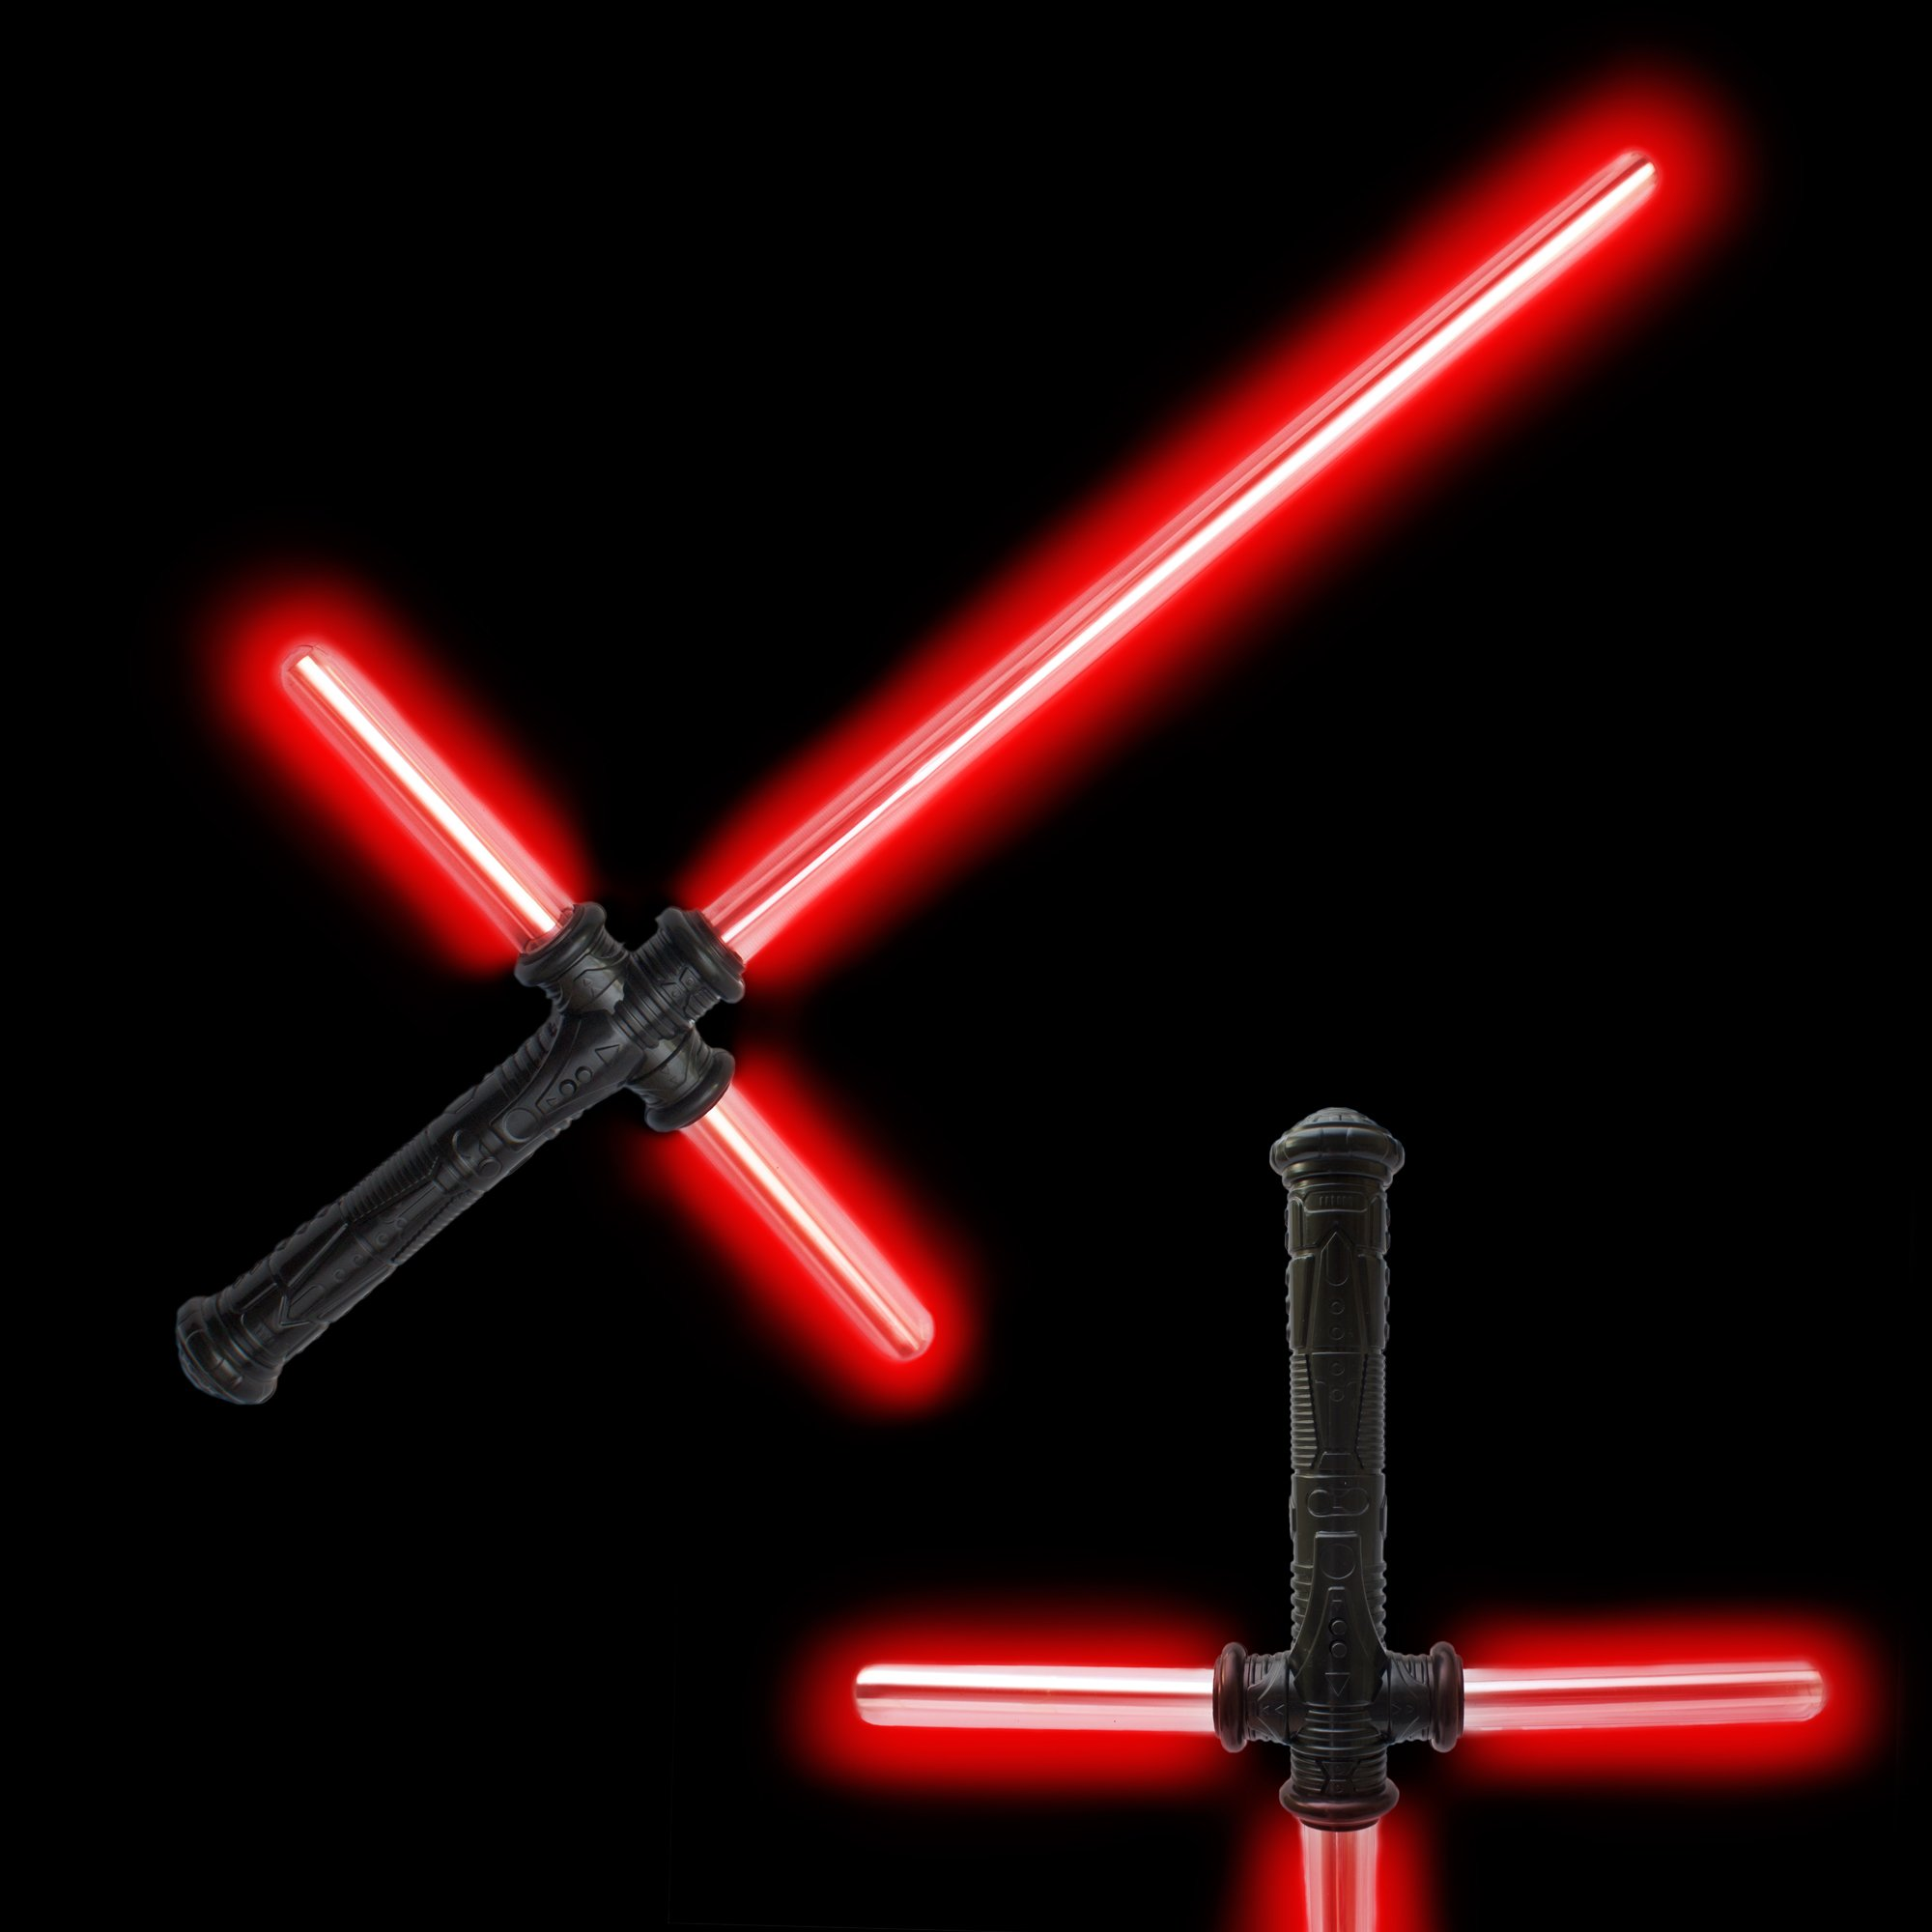 Fun Central AU206 27 Inch Red LED Tri-Saber with Sound, LED Light Saber Sword Toy, LED Light Saber Sword for Kids